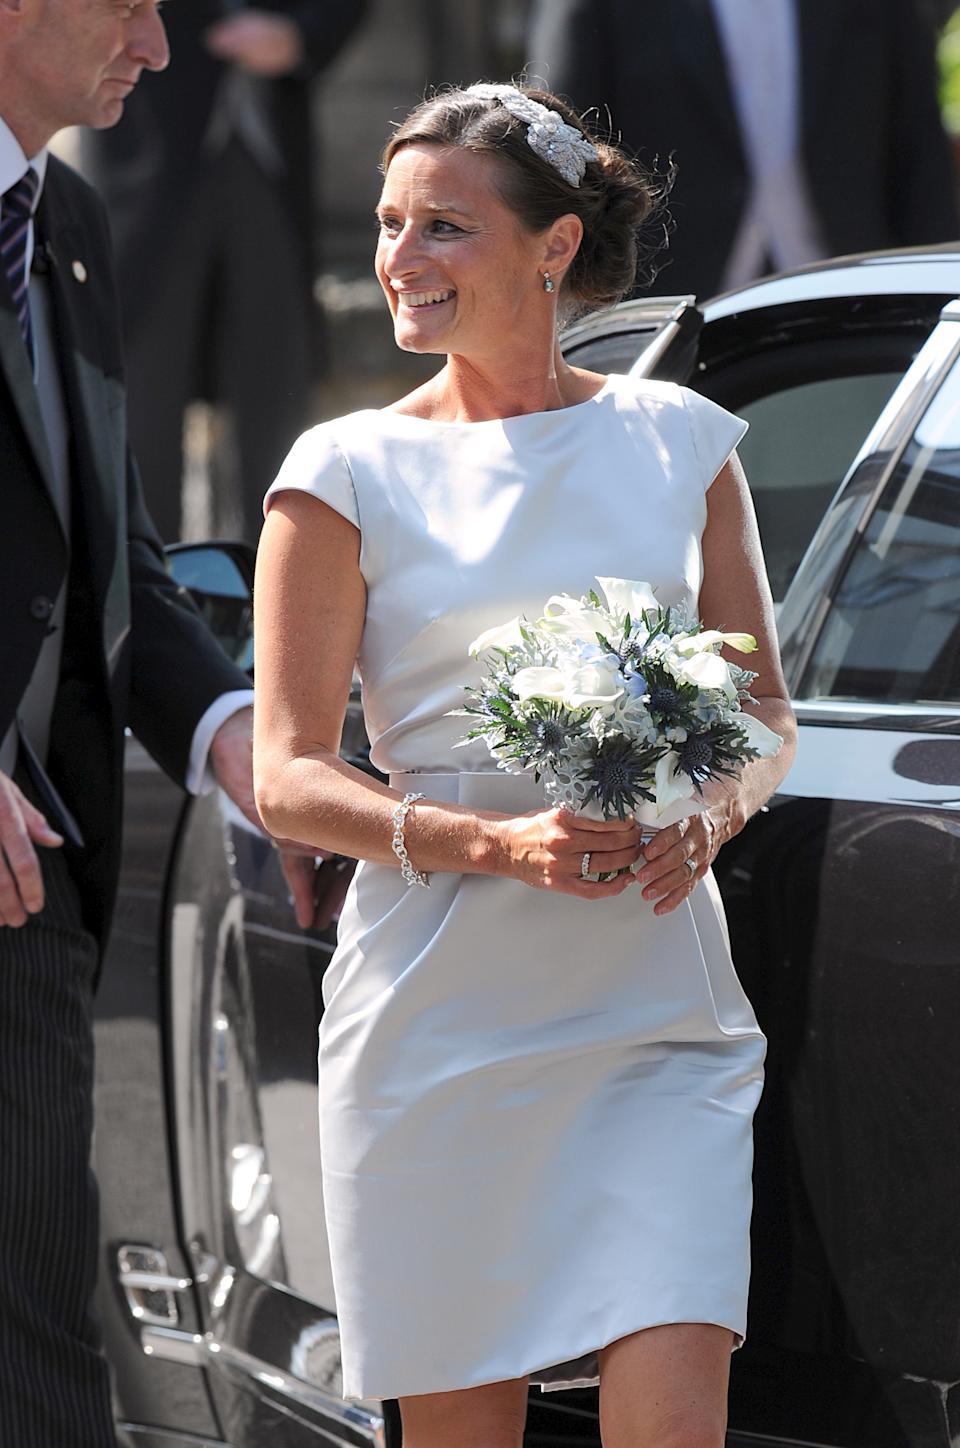 Maid of Honour Dolly Maude arriving for the wedding of Zara Phillips and Mike Tindall.   (Photo by Owen Humphreys/PA Images via Getty Images)